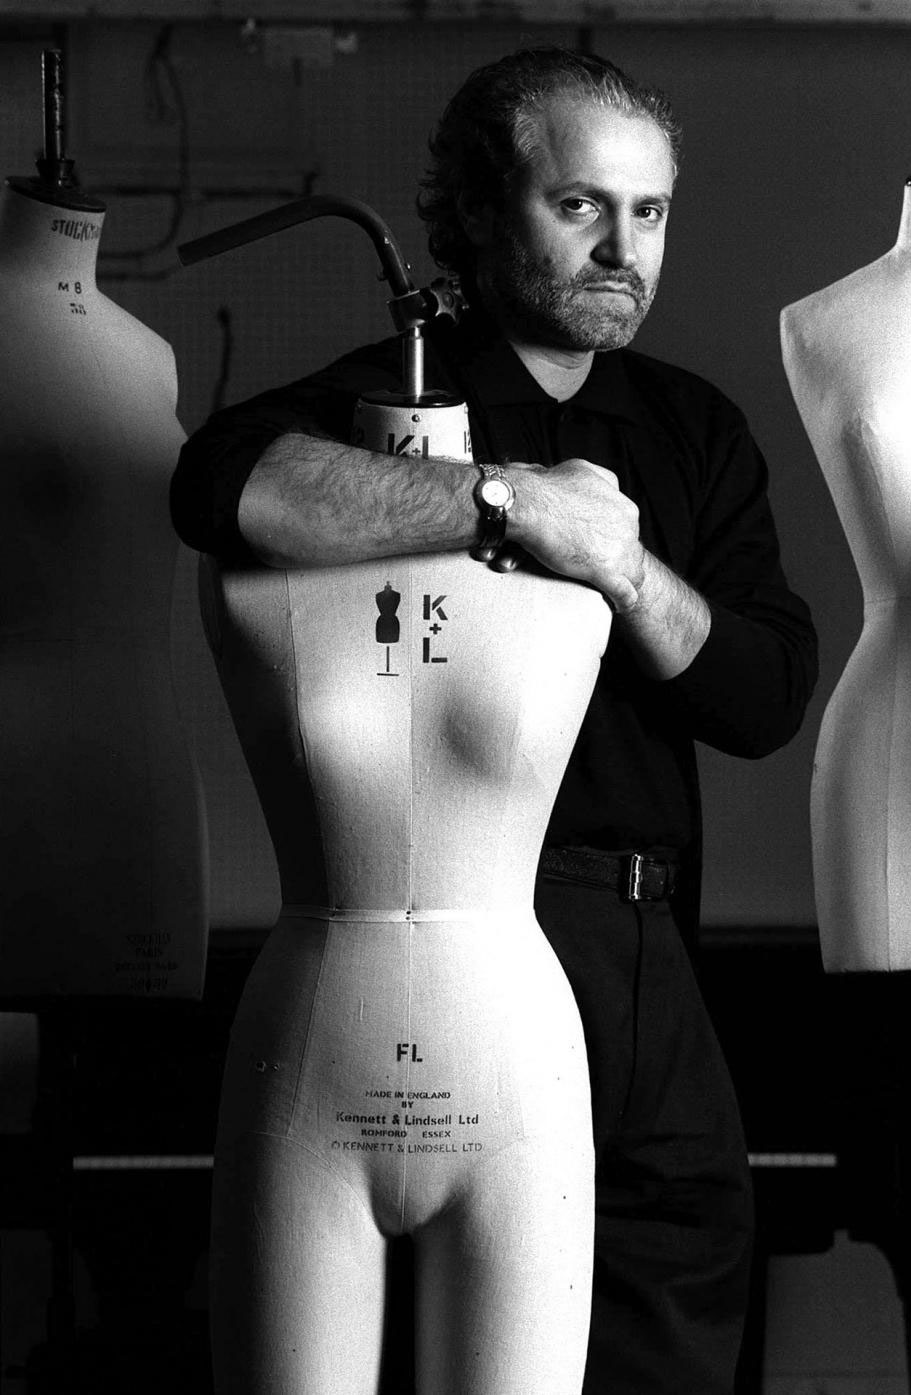 Gianni Versace / Gianni Versace biography / Gianni Versace quotes / Life of Gianni Versace / Made in Italy / Italian fashion designers / via fashioned by love british fashion blog